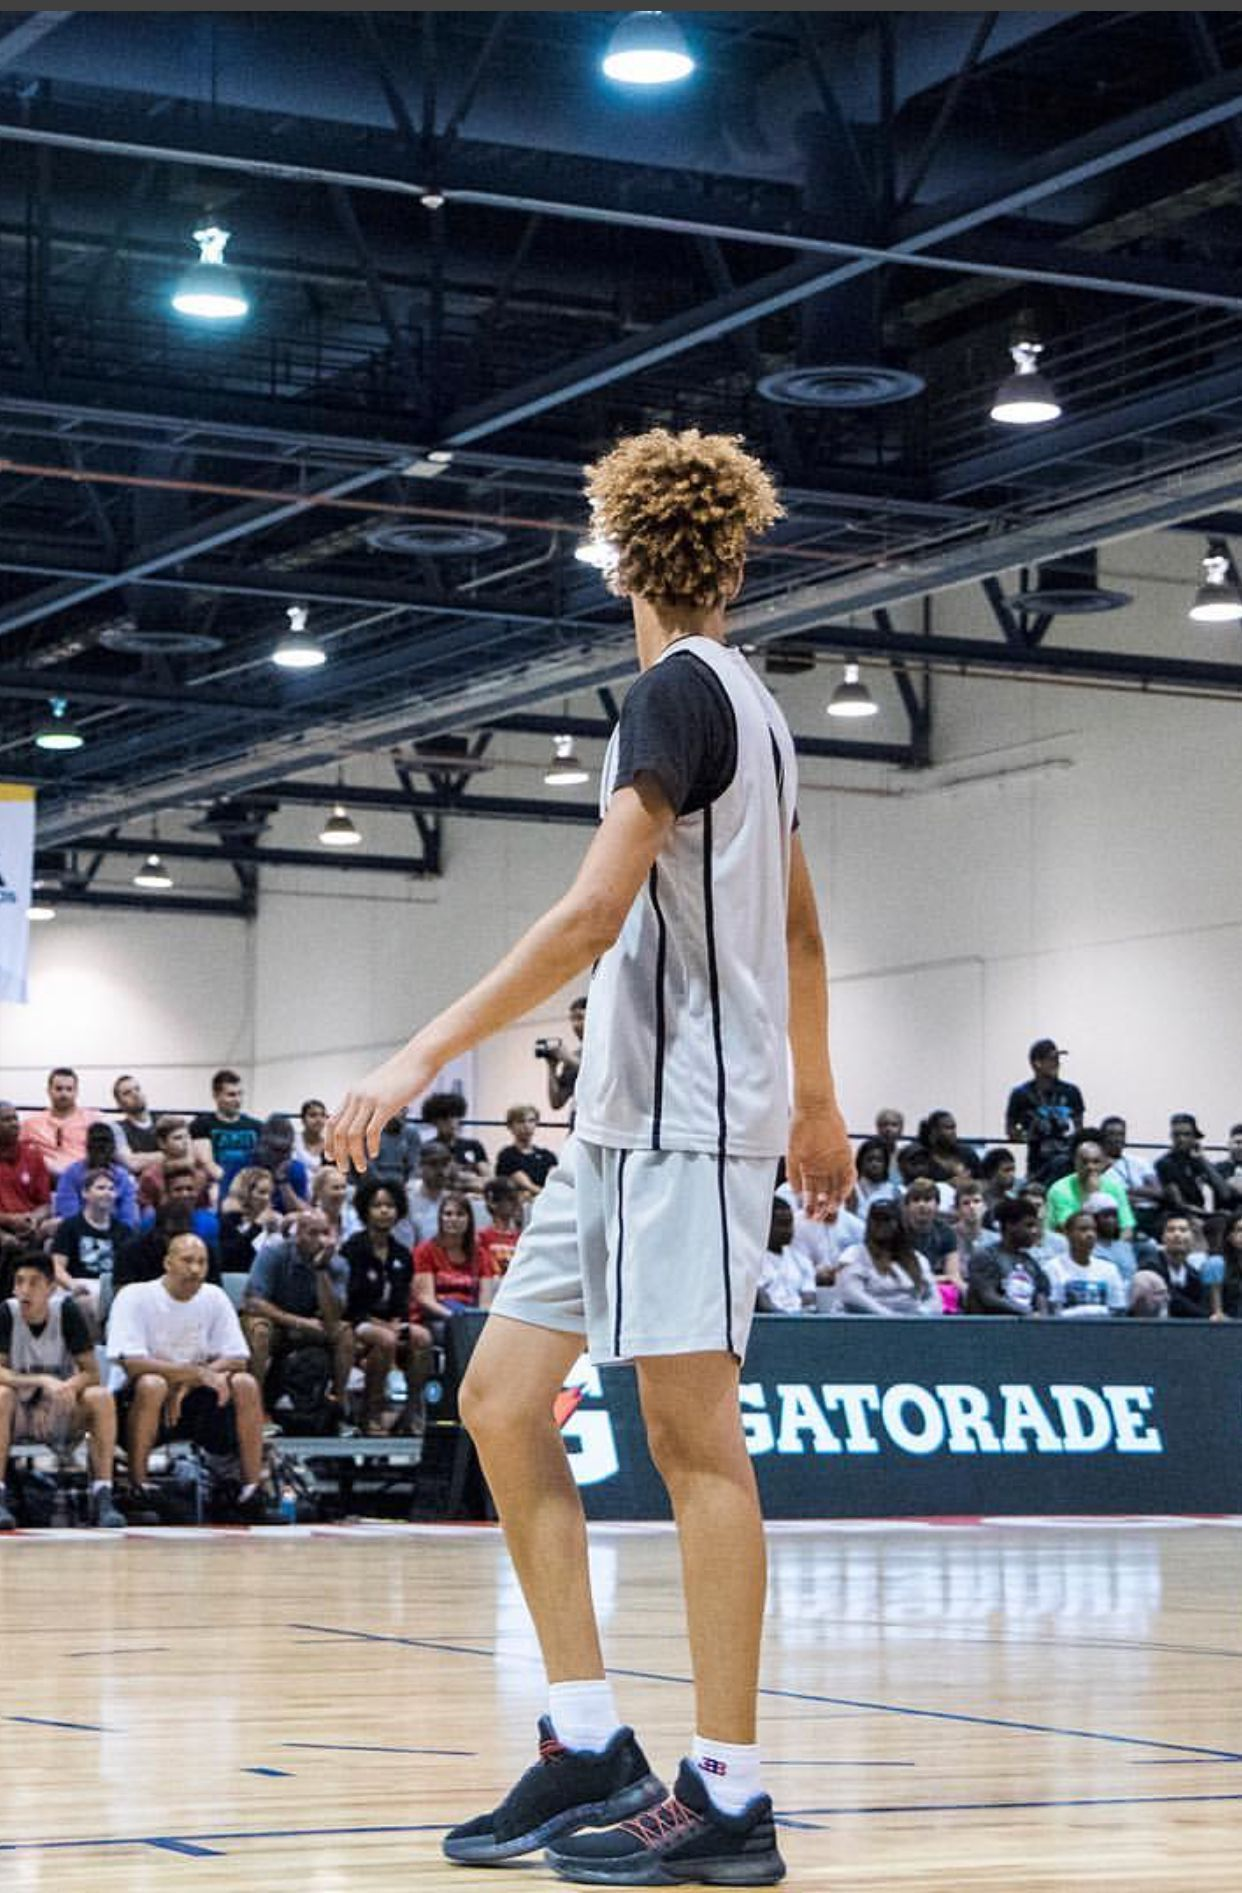 There For You Melo Lamelo Ball Nike Basketball Shorts Liangelo Ball